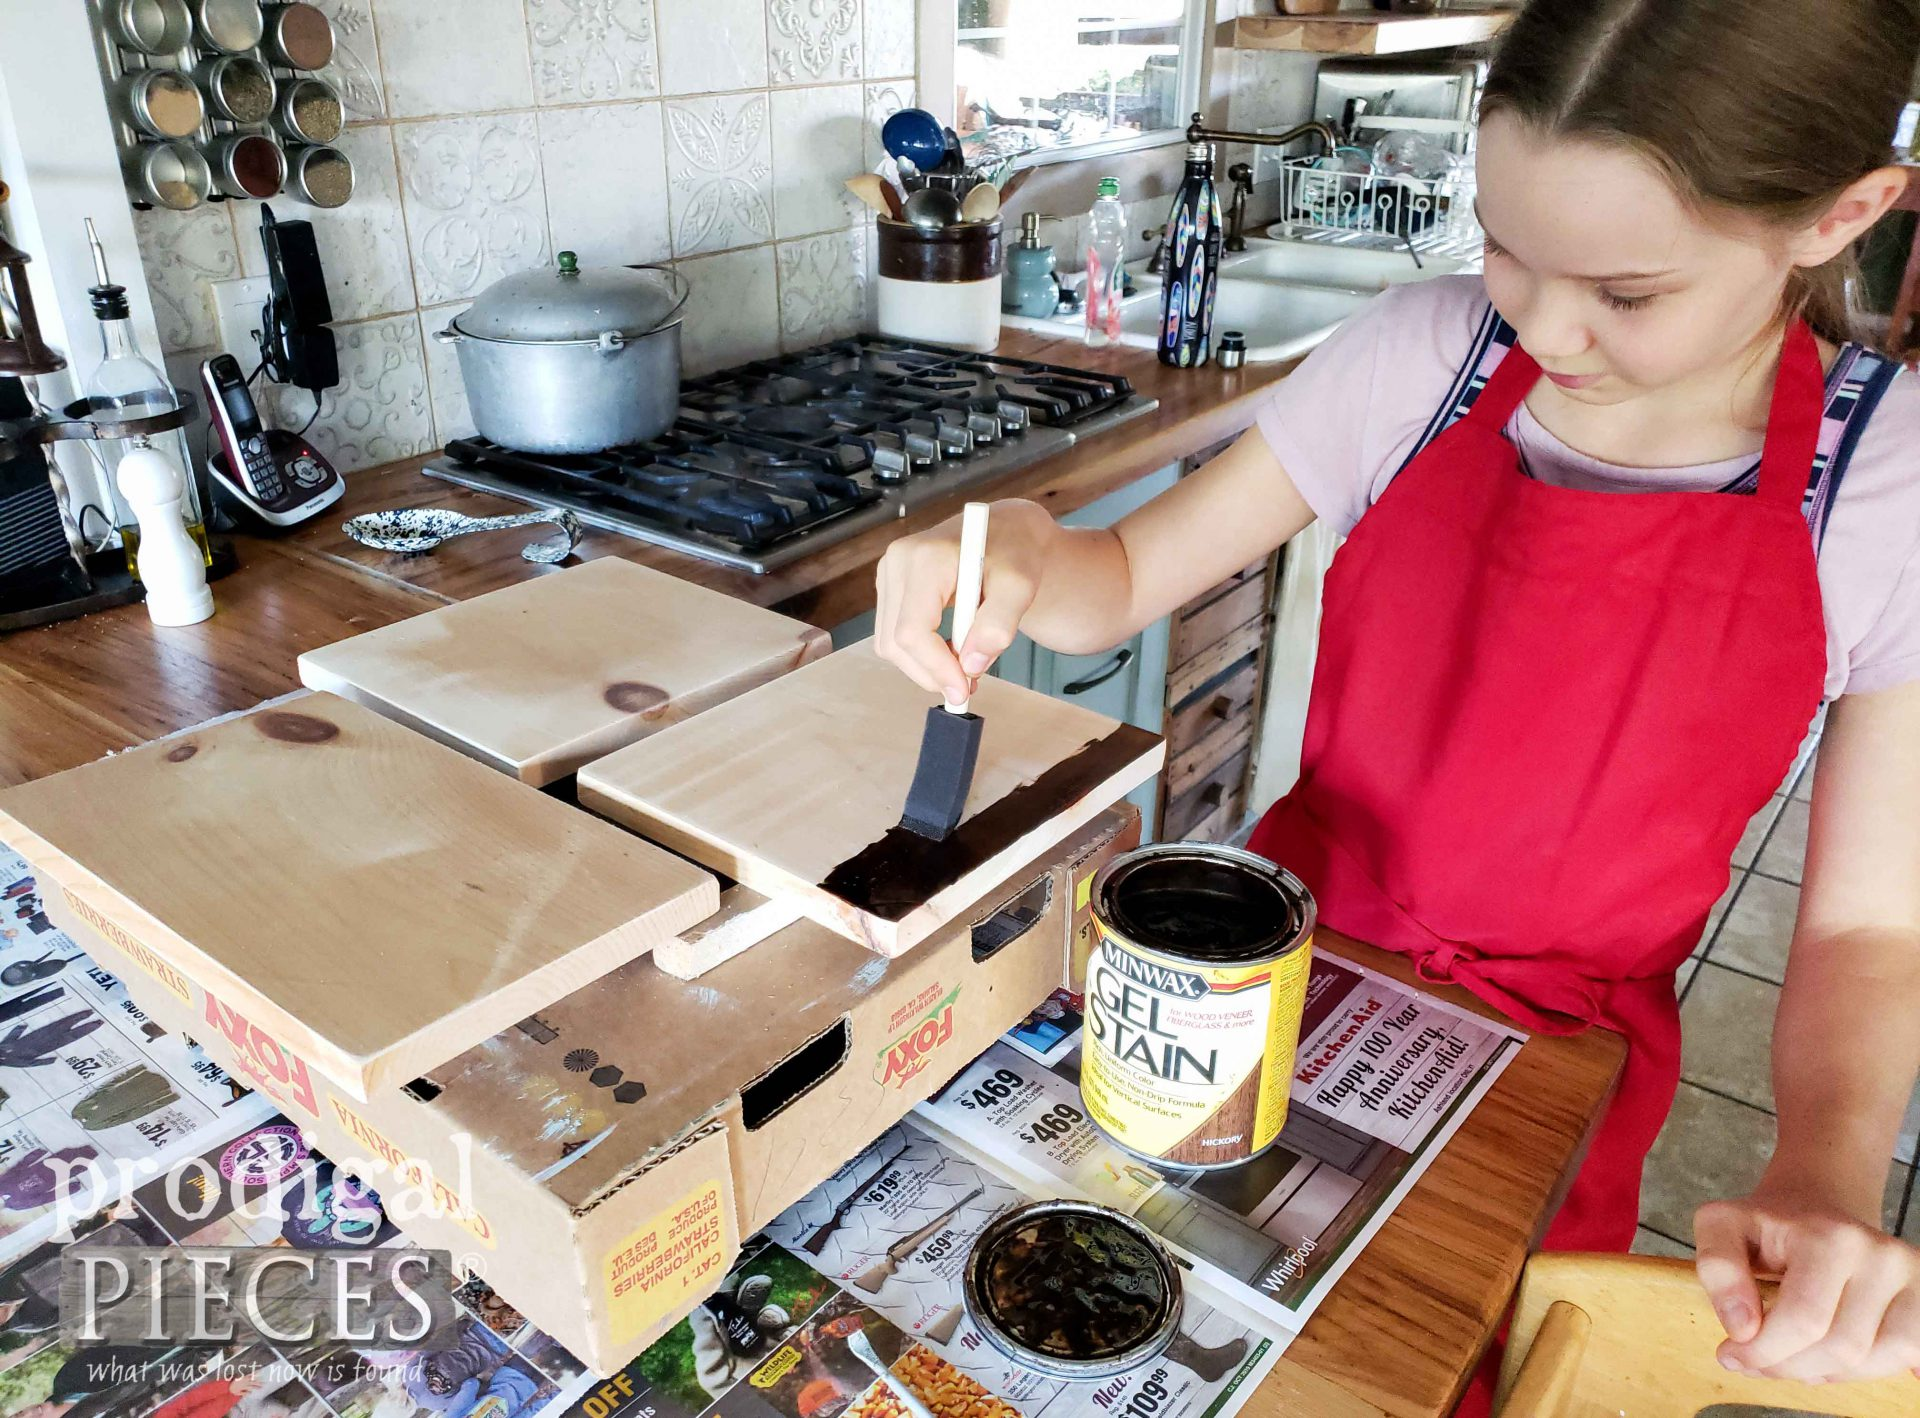 Staining Wood Boards for Fall Pumpkin Button Art | prodigalpieces.com